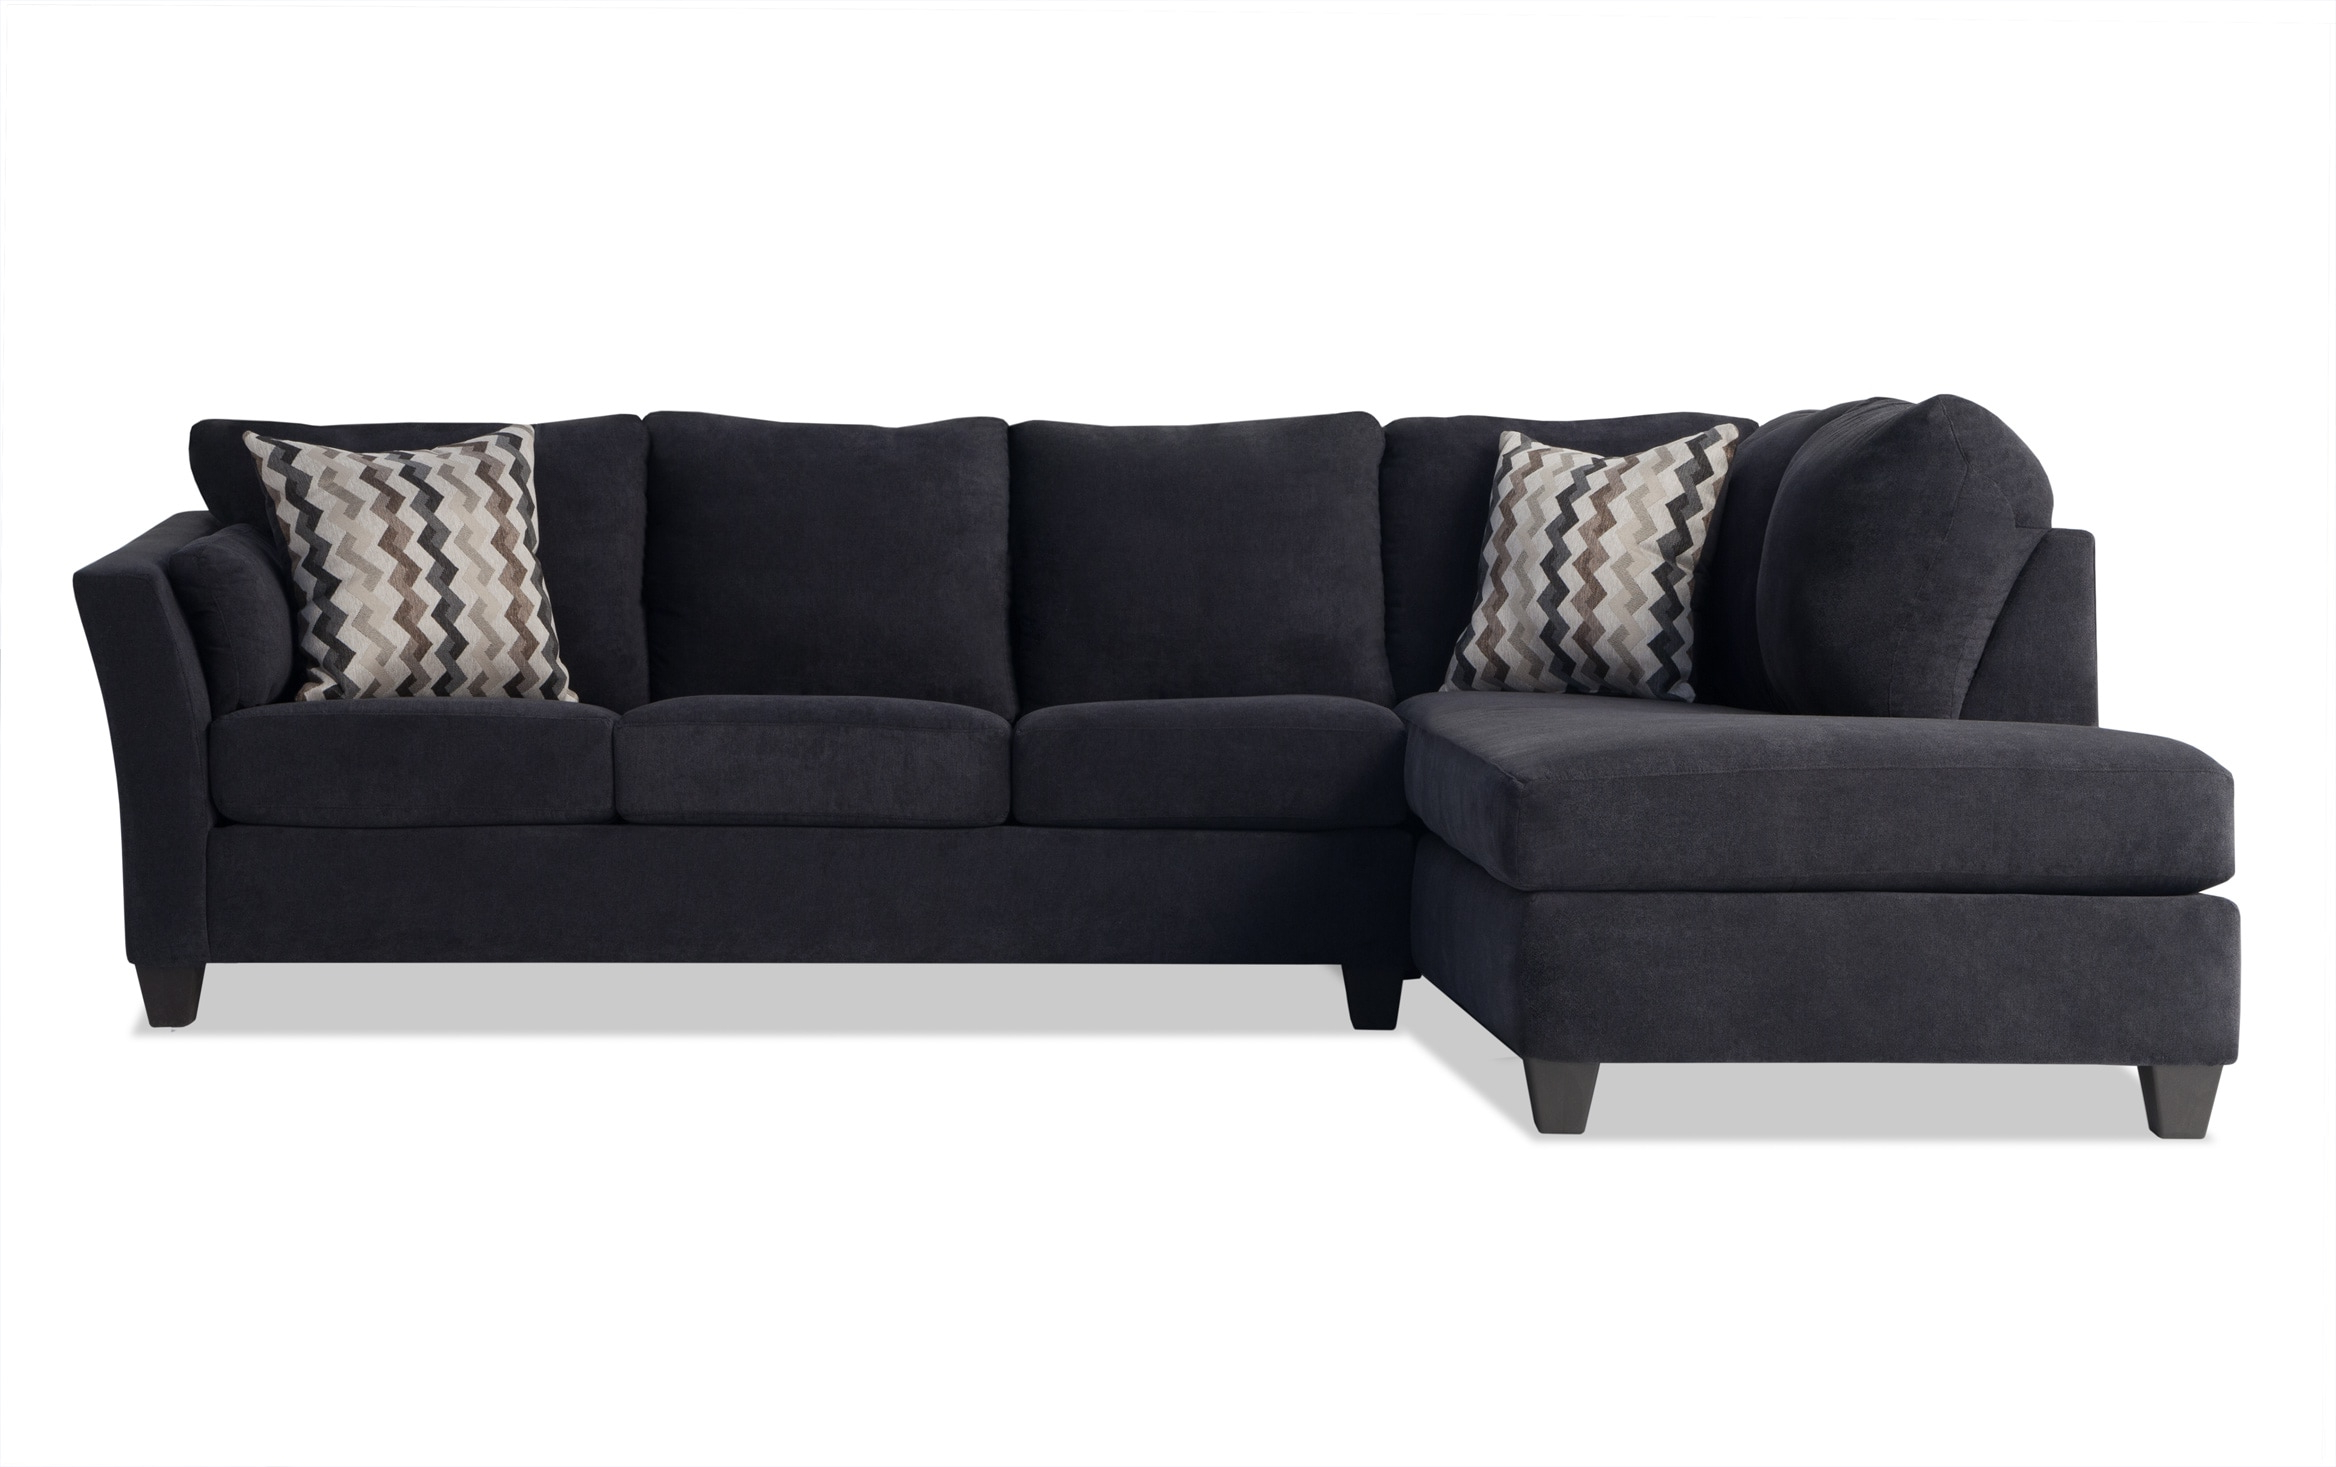 Most Recent 2Pc Maddox Left Arm Facing Sectional Sofas With Chaise Brown In Sectional Sofas Bobs Playscape 2 Piece Sectional Bob S (View 23 of 25)